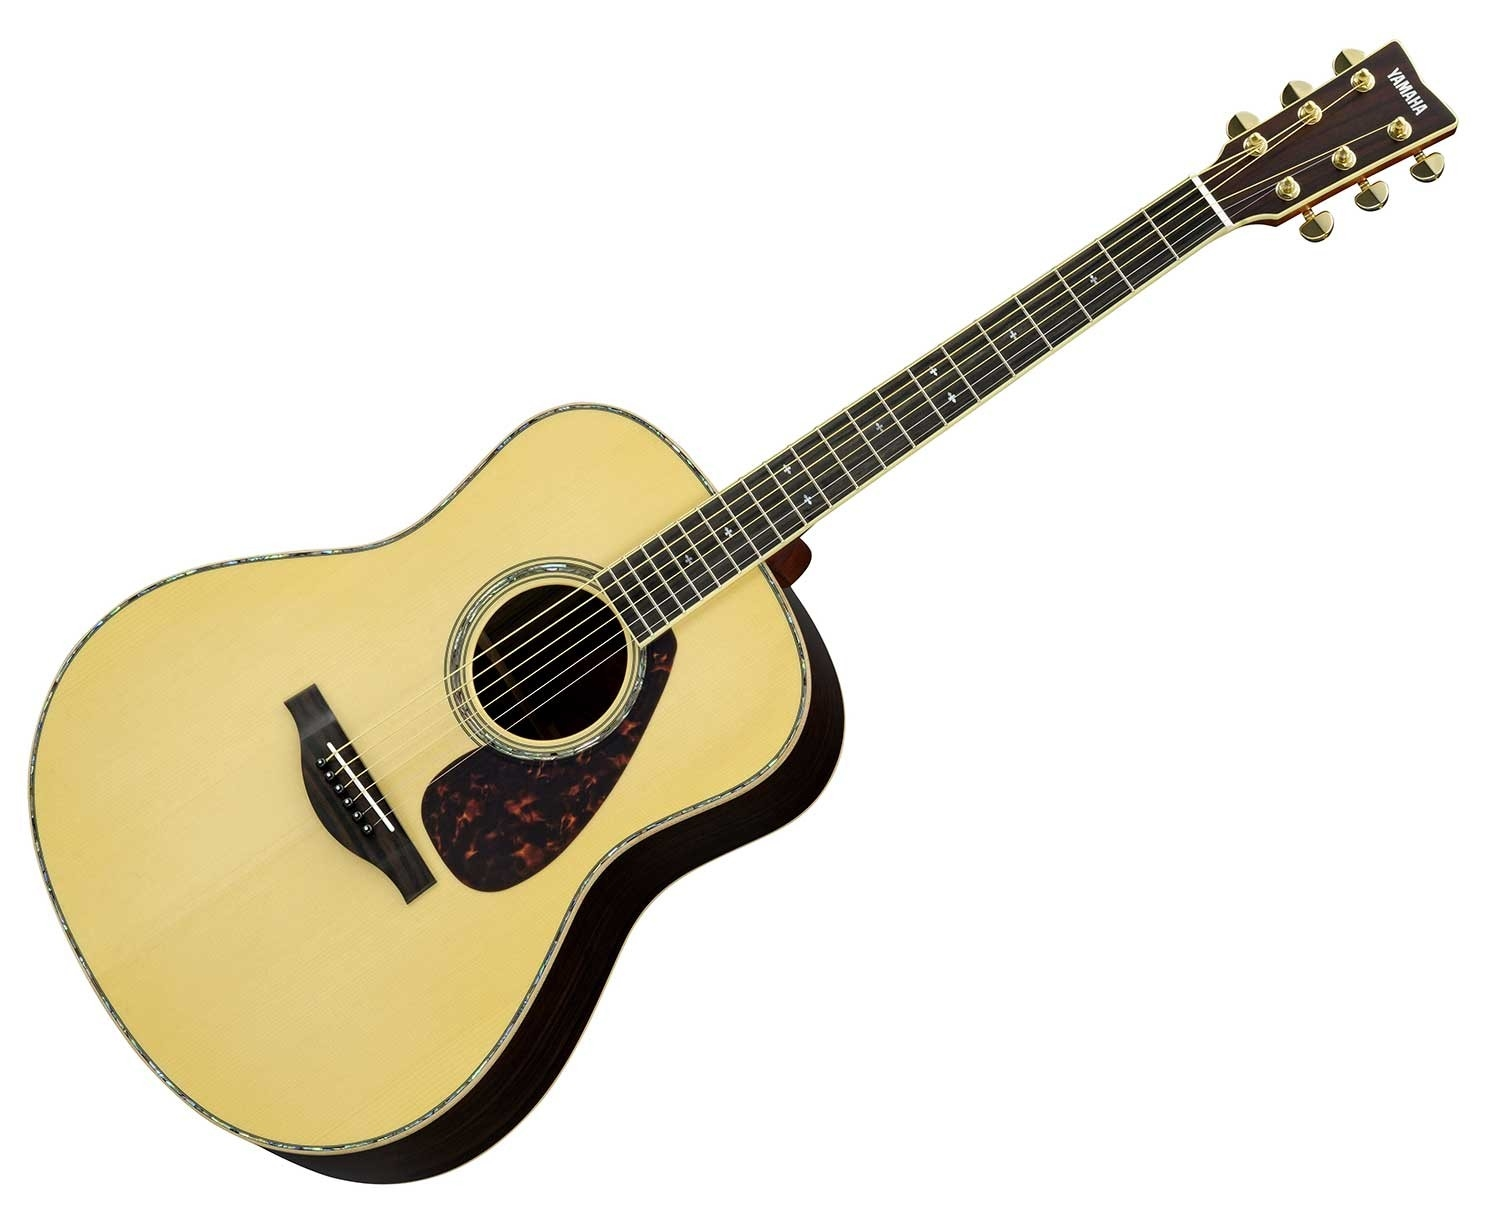 Yamaha LL16RD Handcrafted Acoustic Guitar With Hard Case.